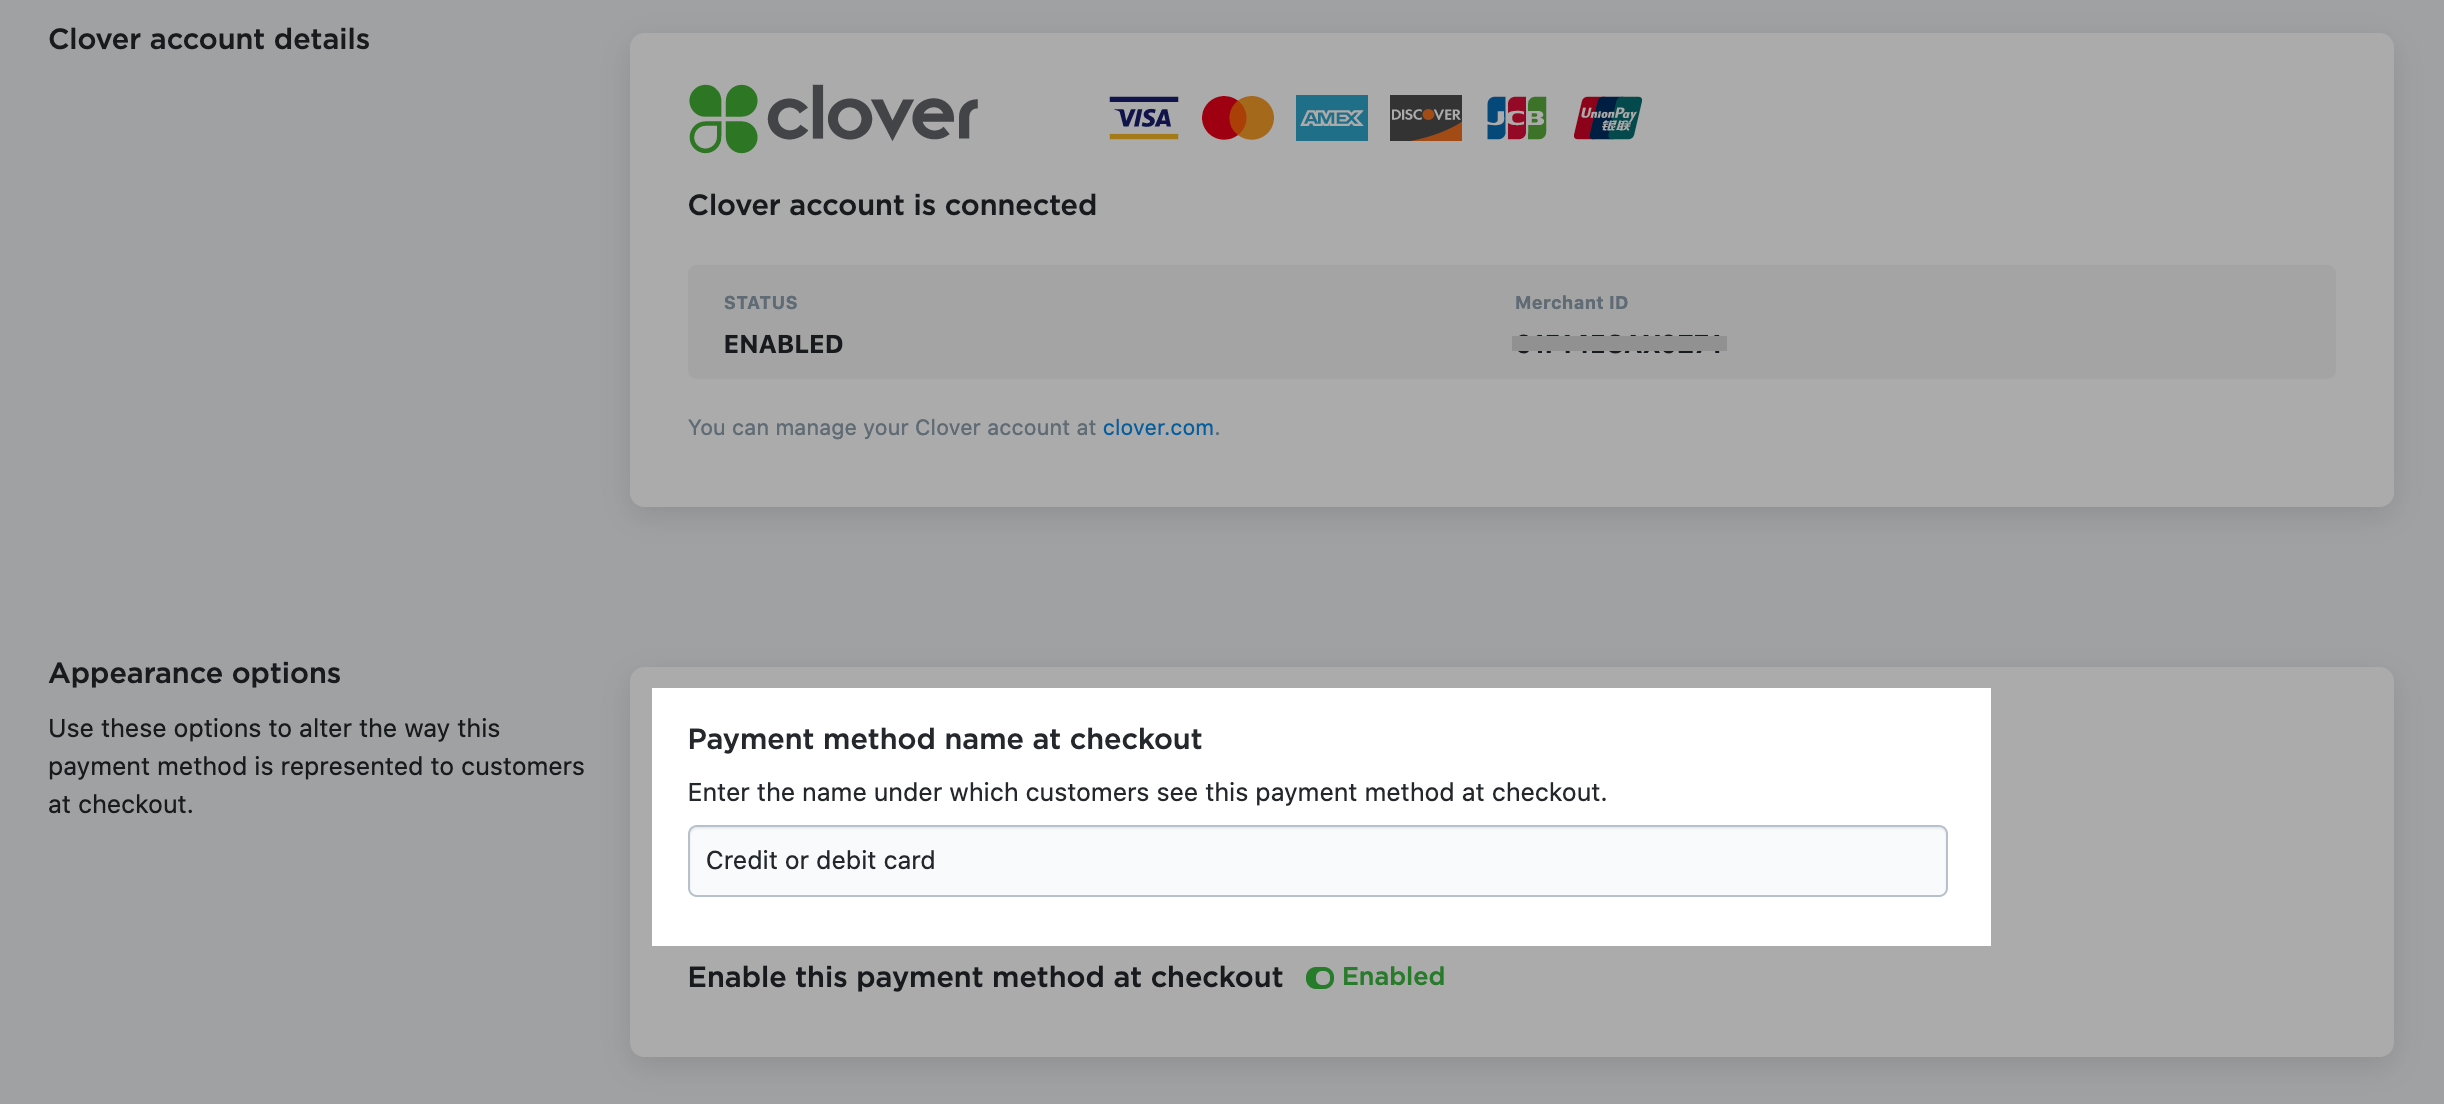 Clover_payment_method.png